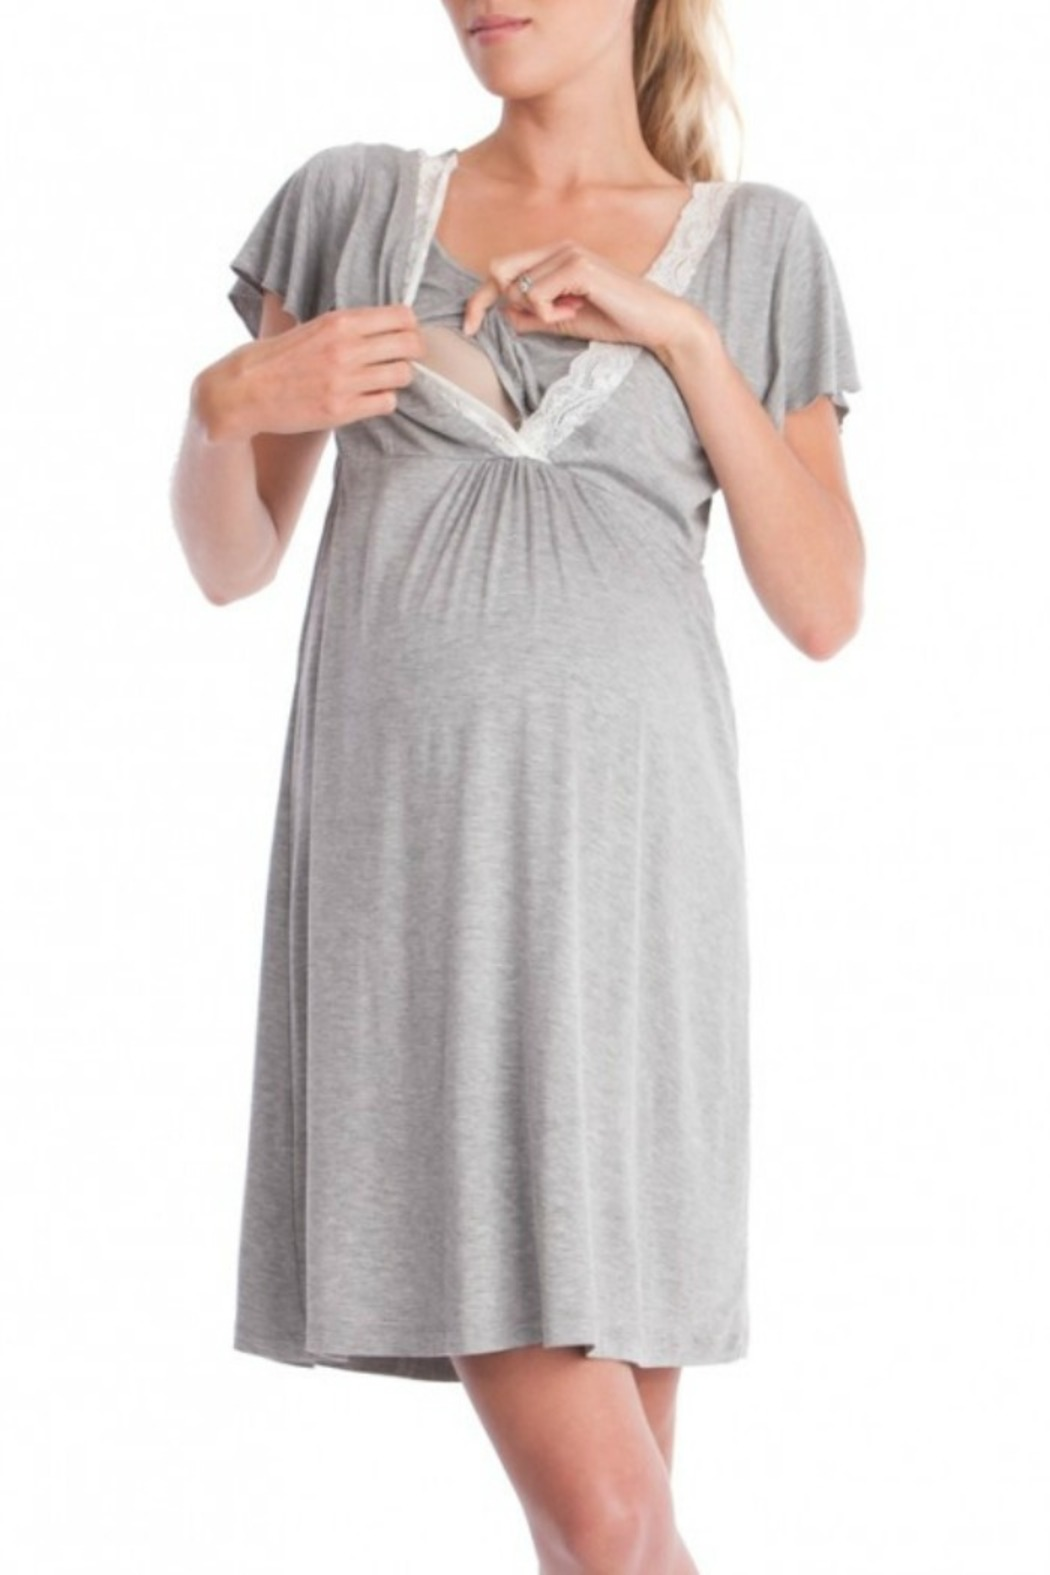 Famous Nursing Sleep Gown Photo - Wedding and flowers ispiration ...